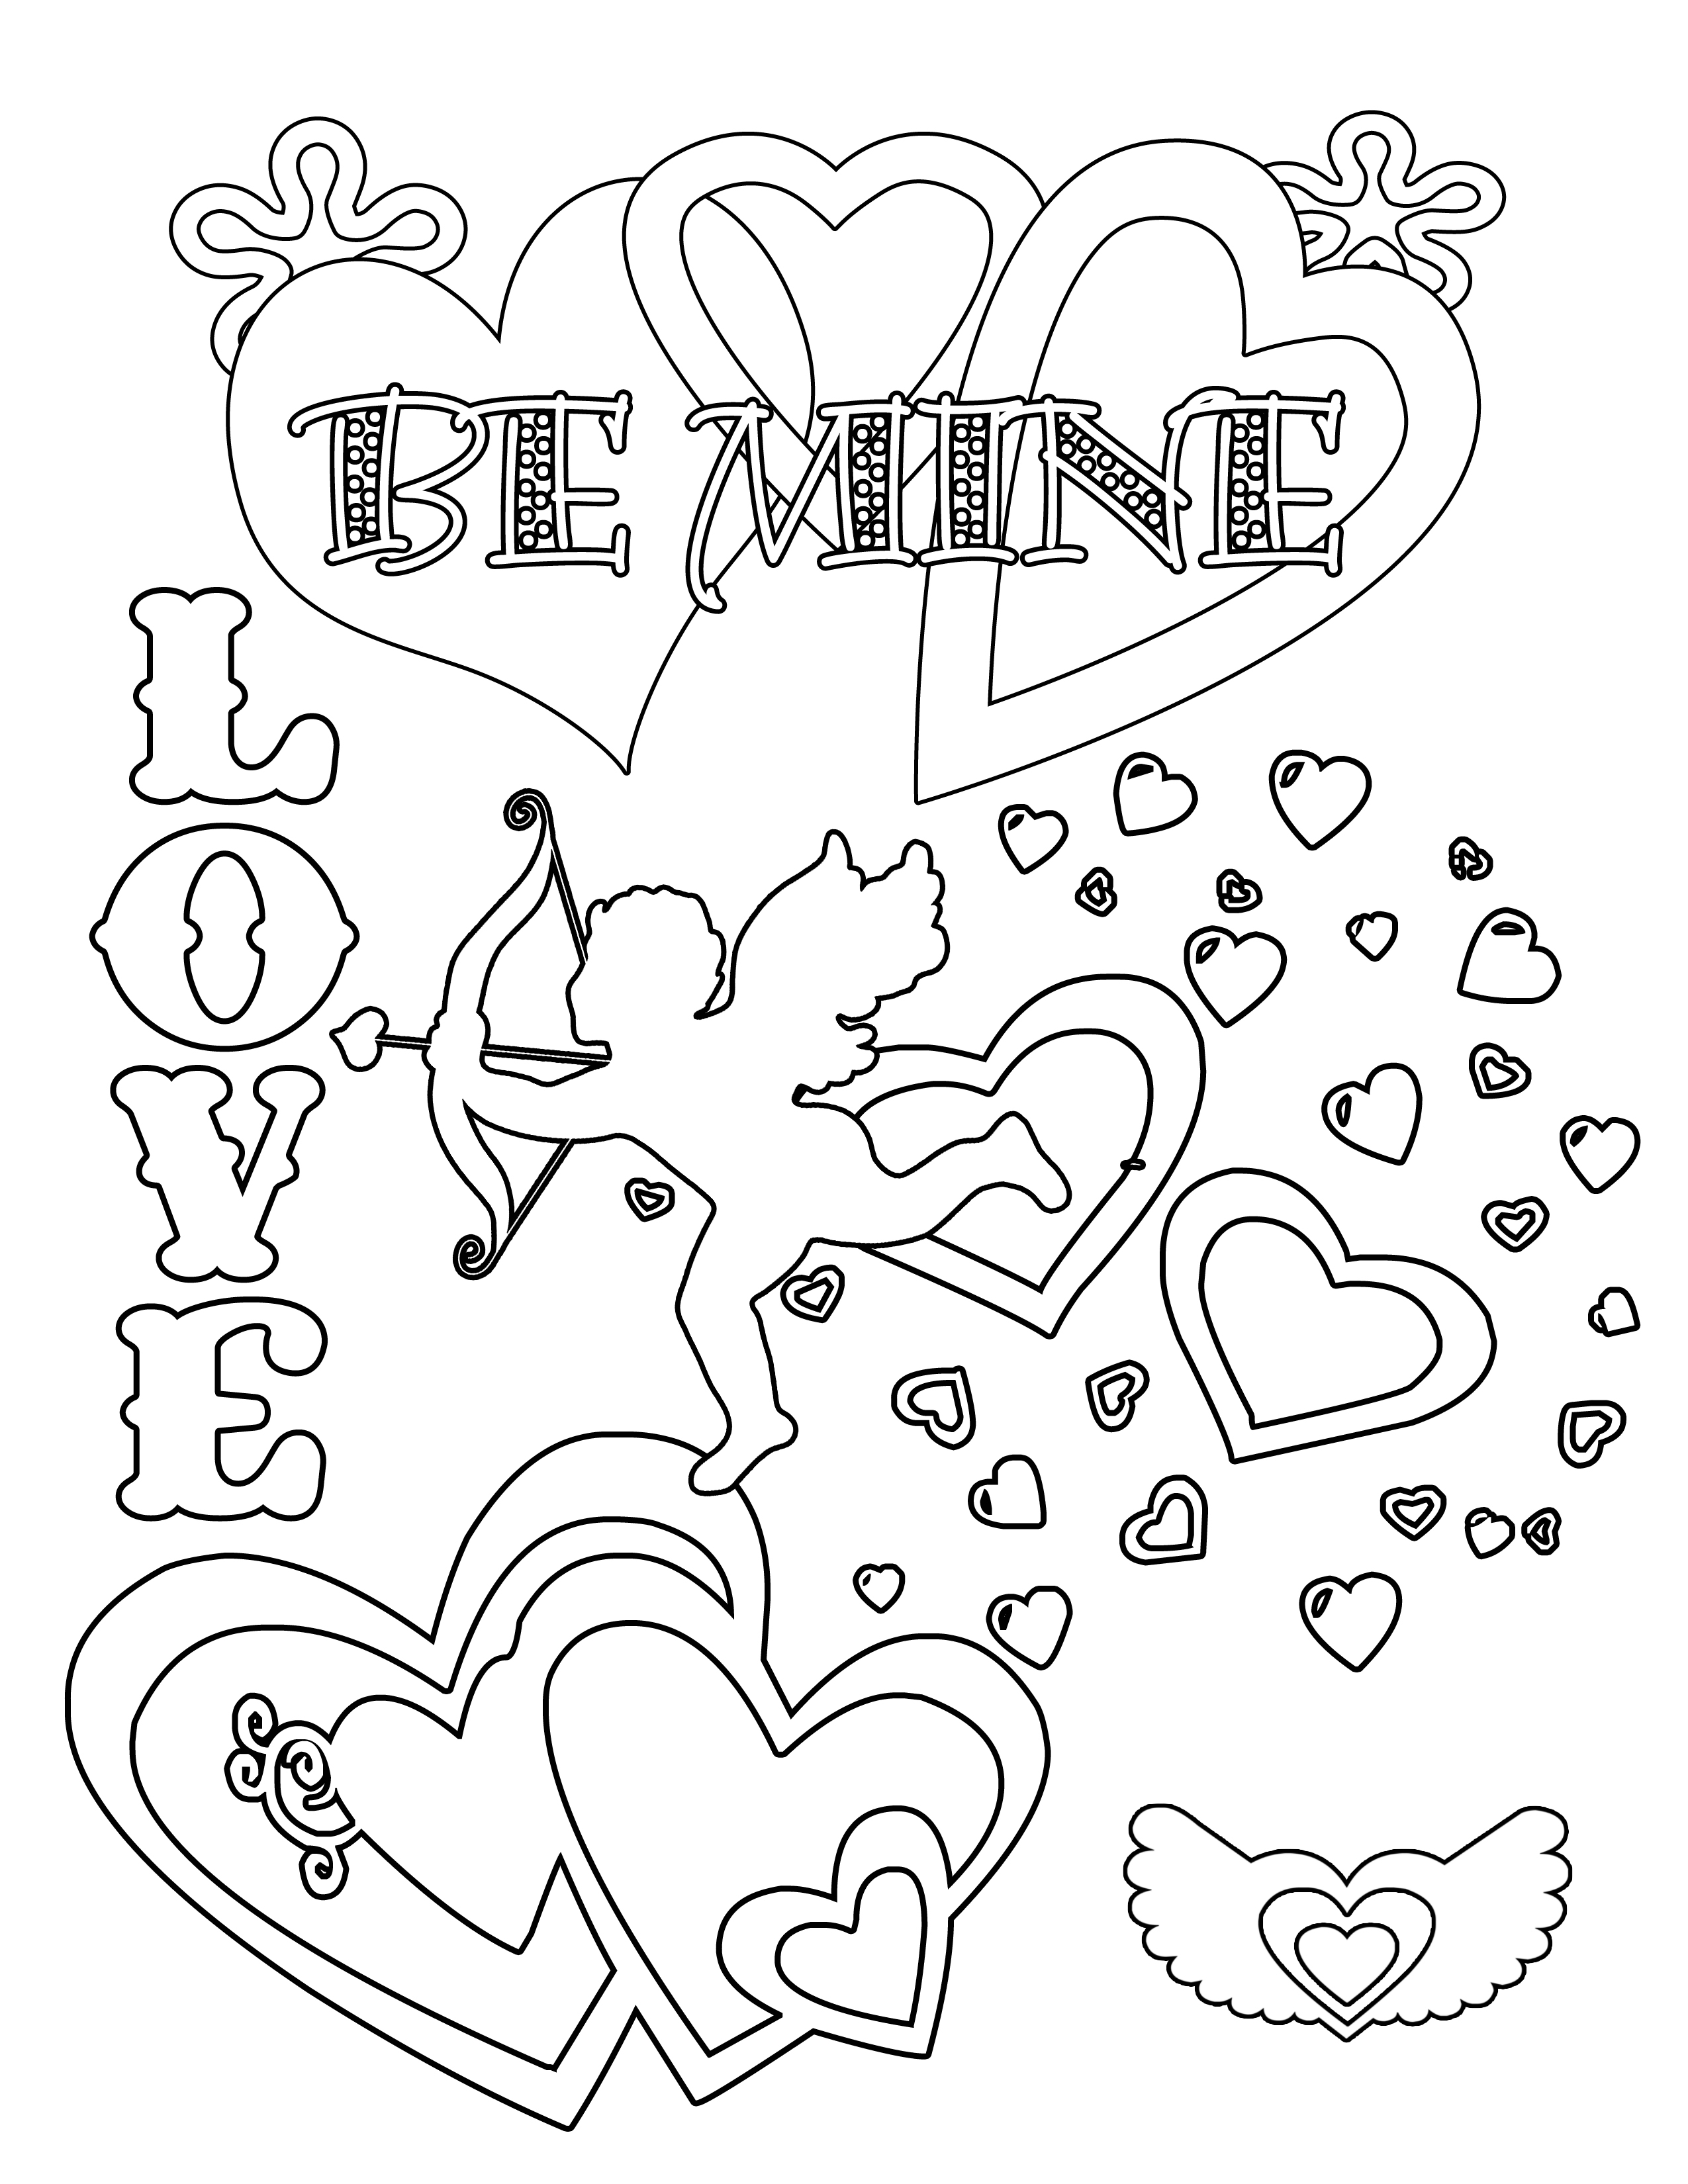 Cute Drawing For Him At Getdrawings Com Free For Personal Use Cute